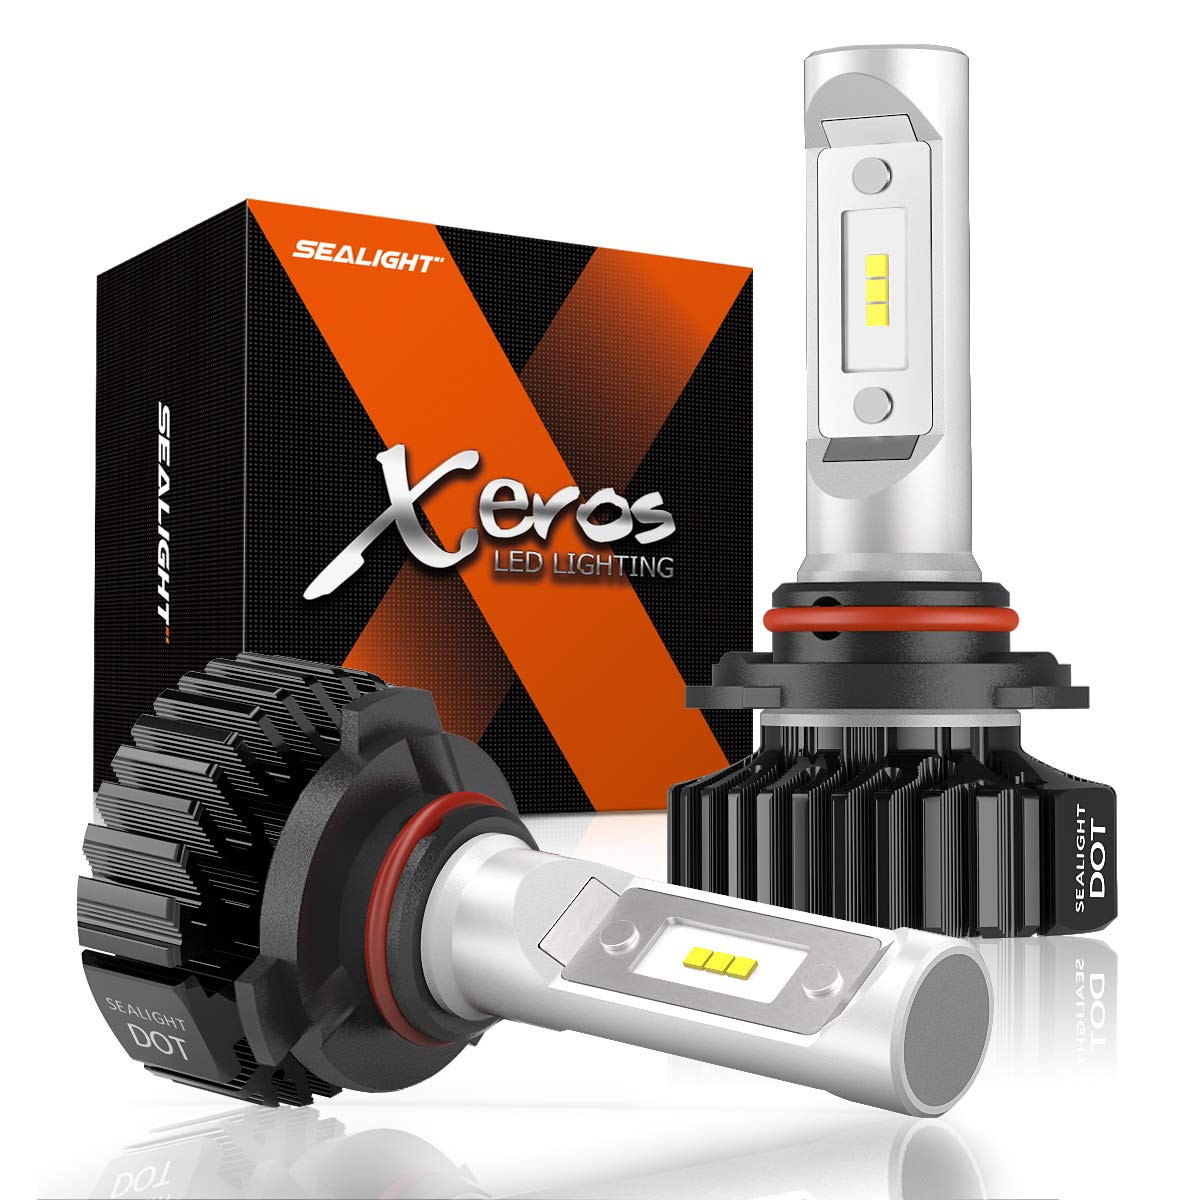 H13 LED Headlight Bulbs SEALIGHT 9008 High and Low Beam 6000K All-in-One Conversion Kit Super Bright Cool White Upgraded 12x CSP Chips